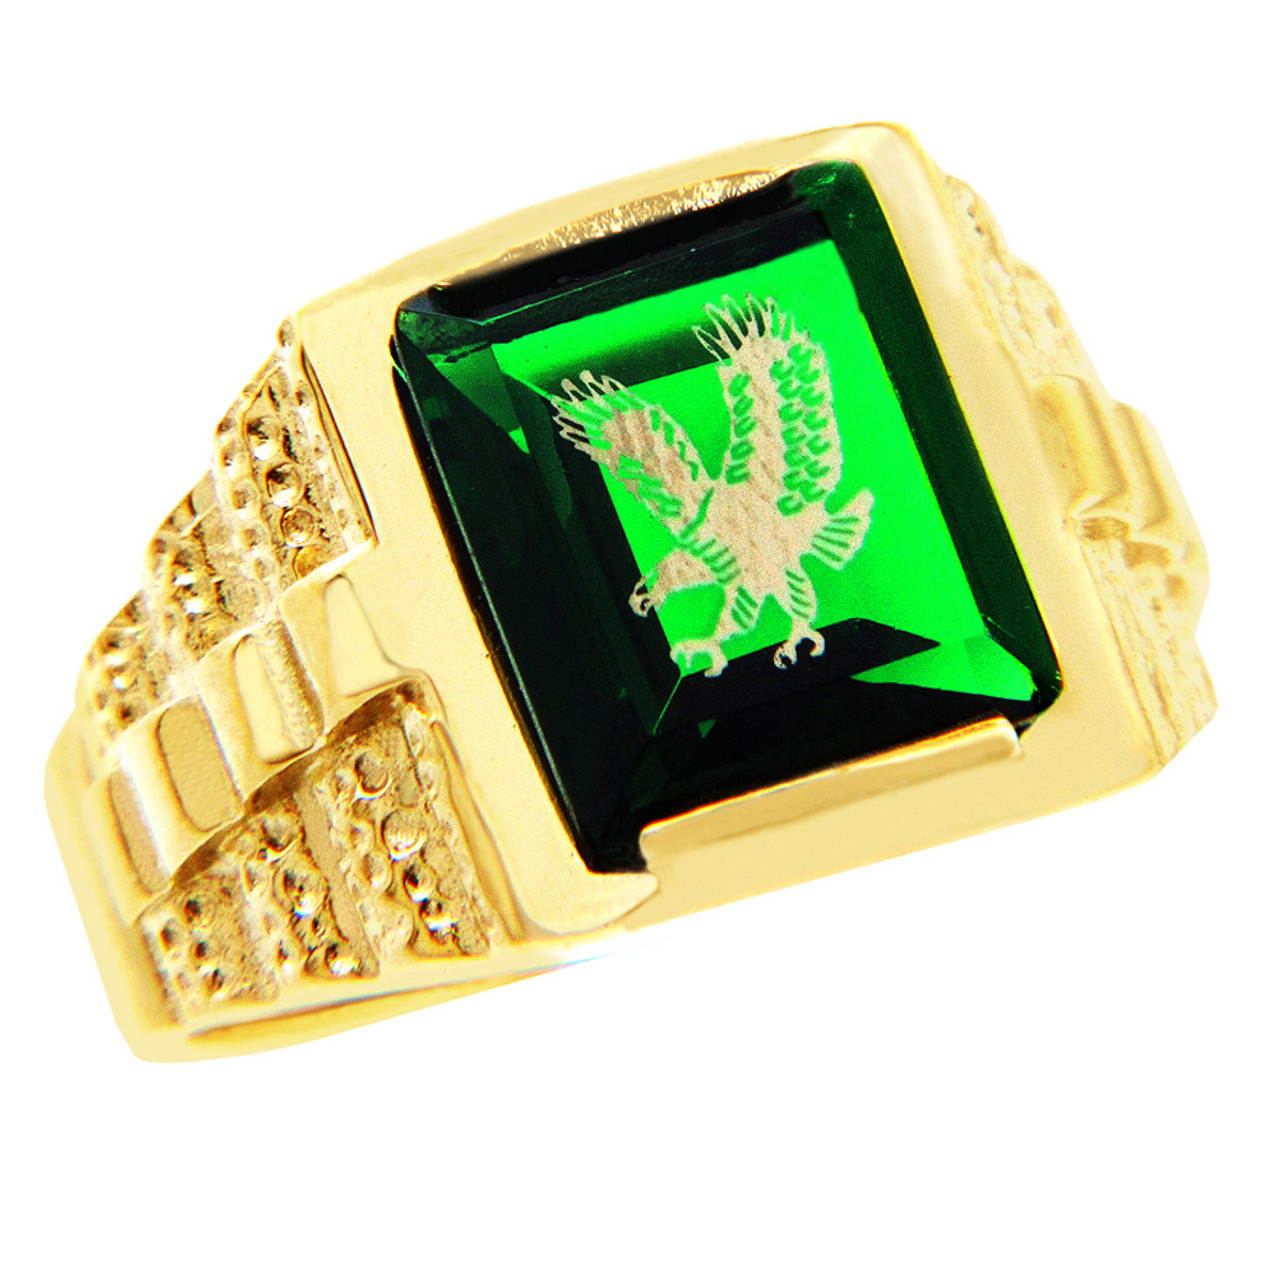 men 39 s gold rings the green stone and gold eagle ring. Black Bedroom Furniture Sets. Home Design Ideas